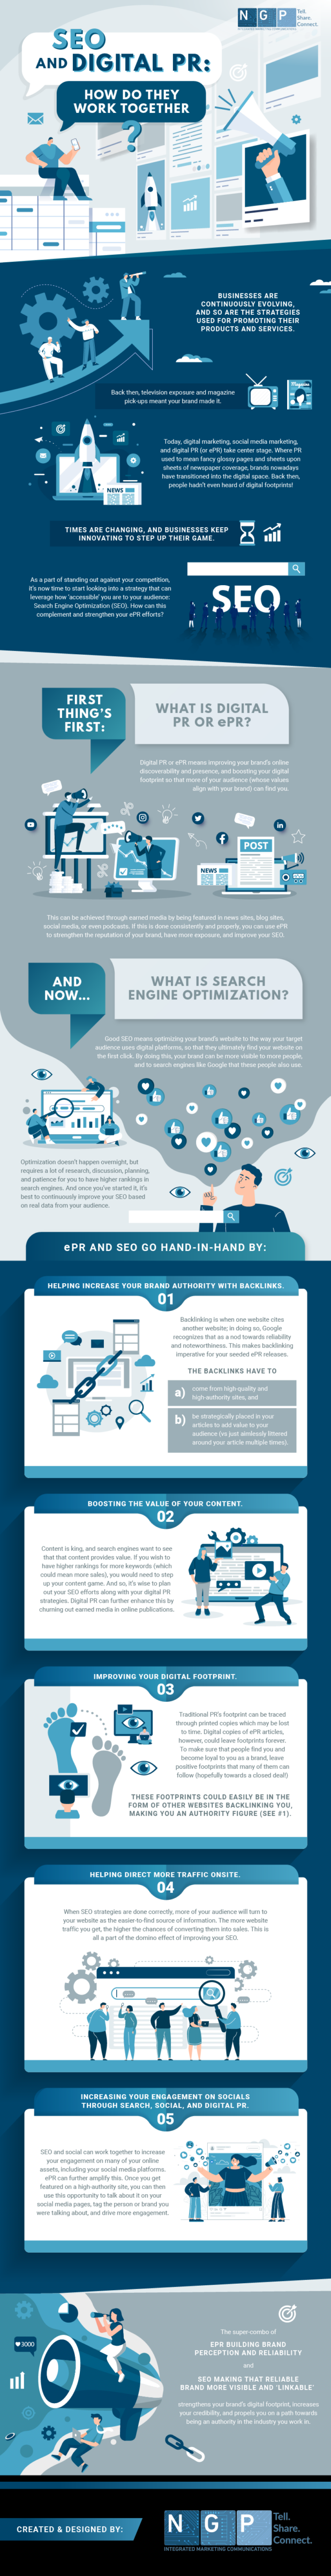 SEO and Digital PR: How Do They Work Together?